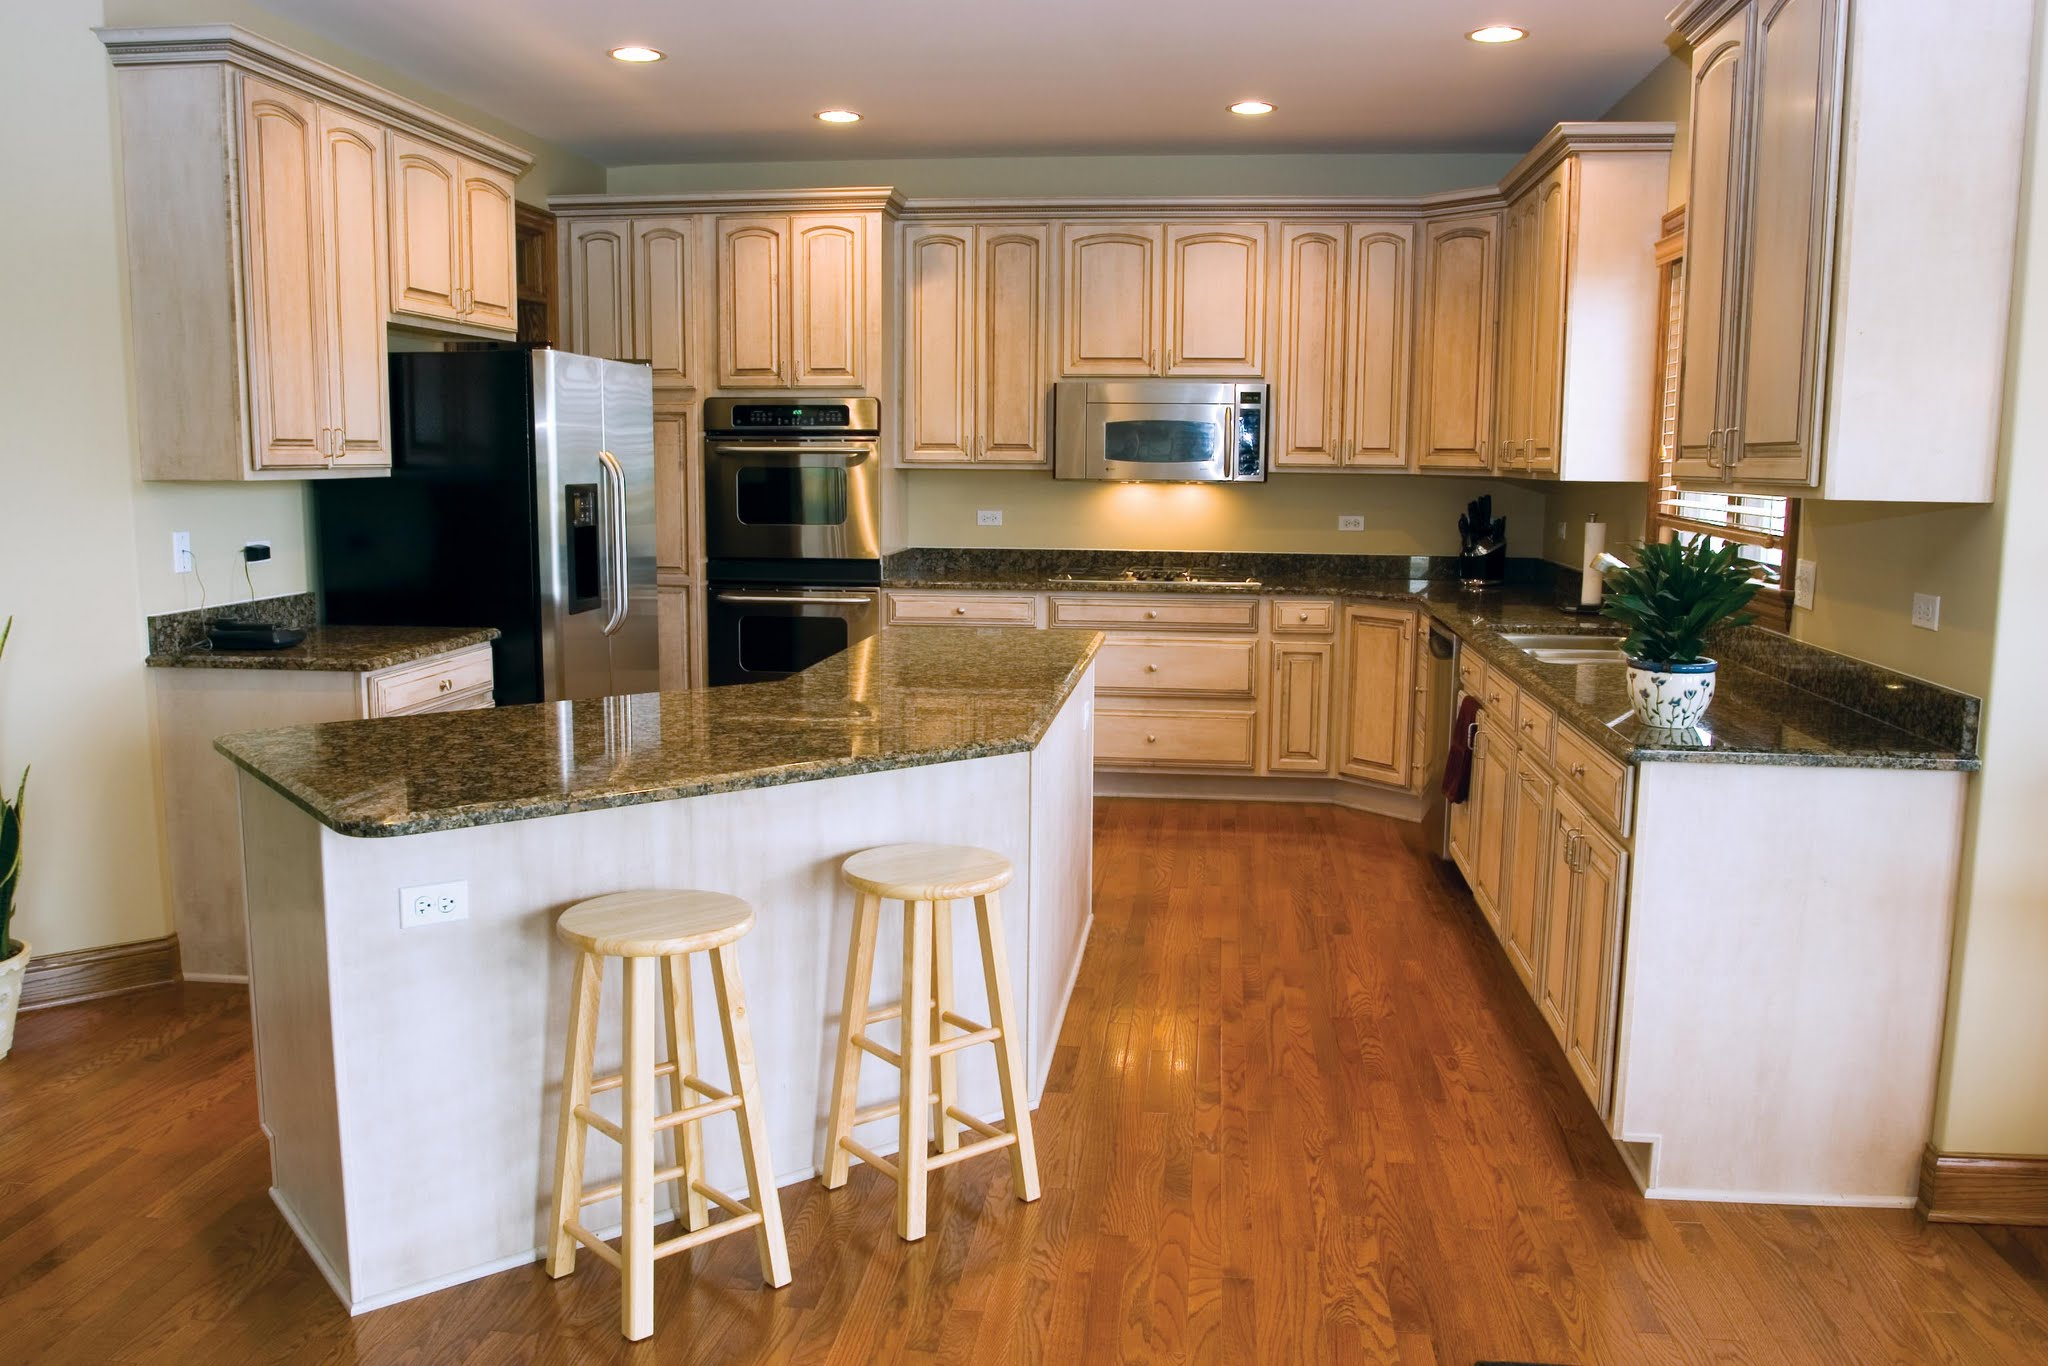 Attrayant Uncategorized Return On Kitchen Remodel Kitchen Remodel Company Contractor  Geneva Il A Remodeled Can Bring In